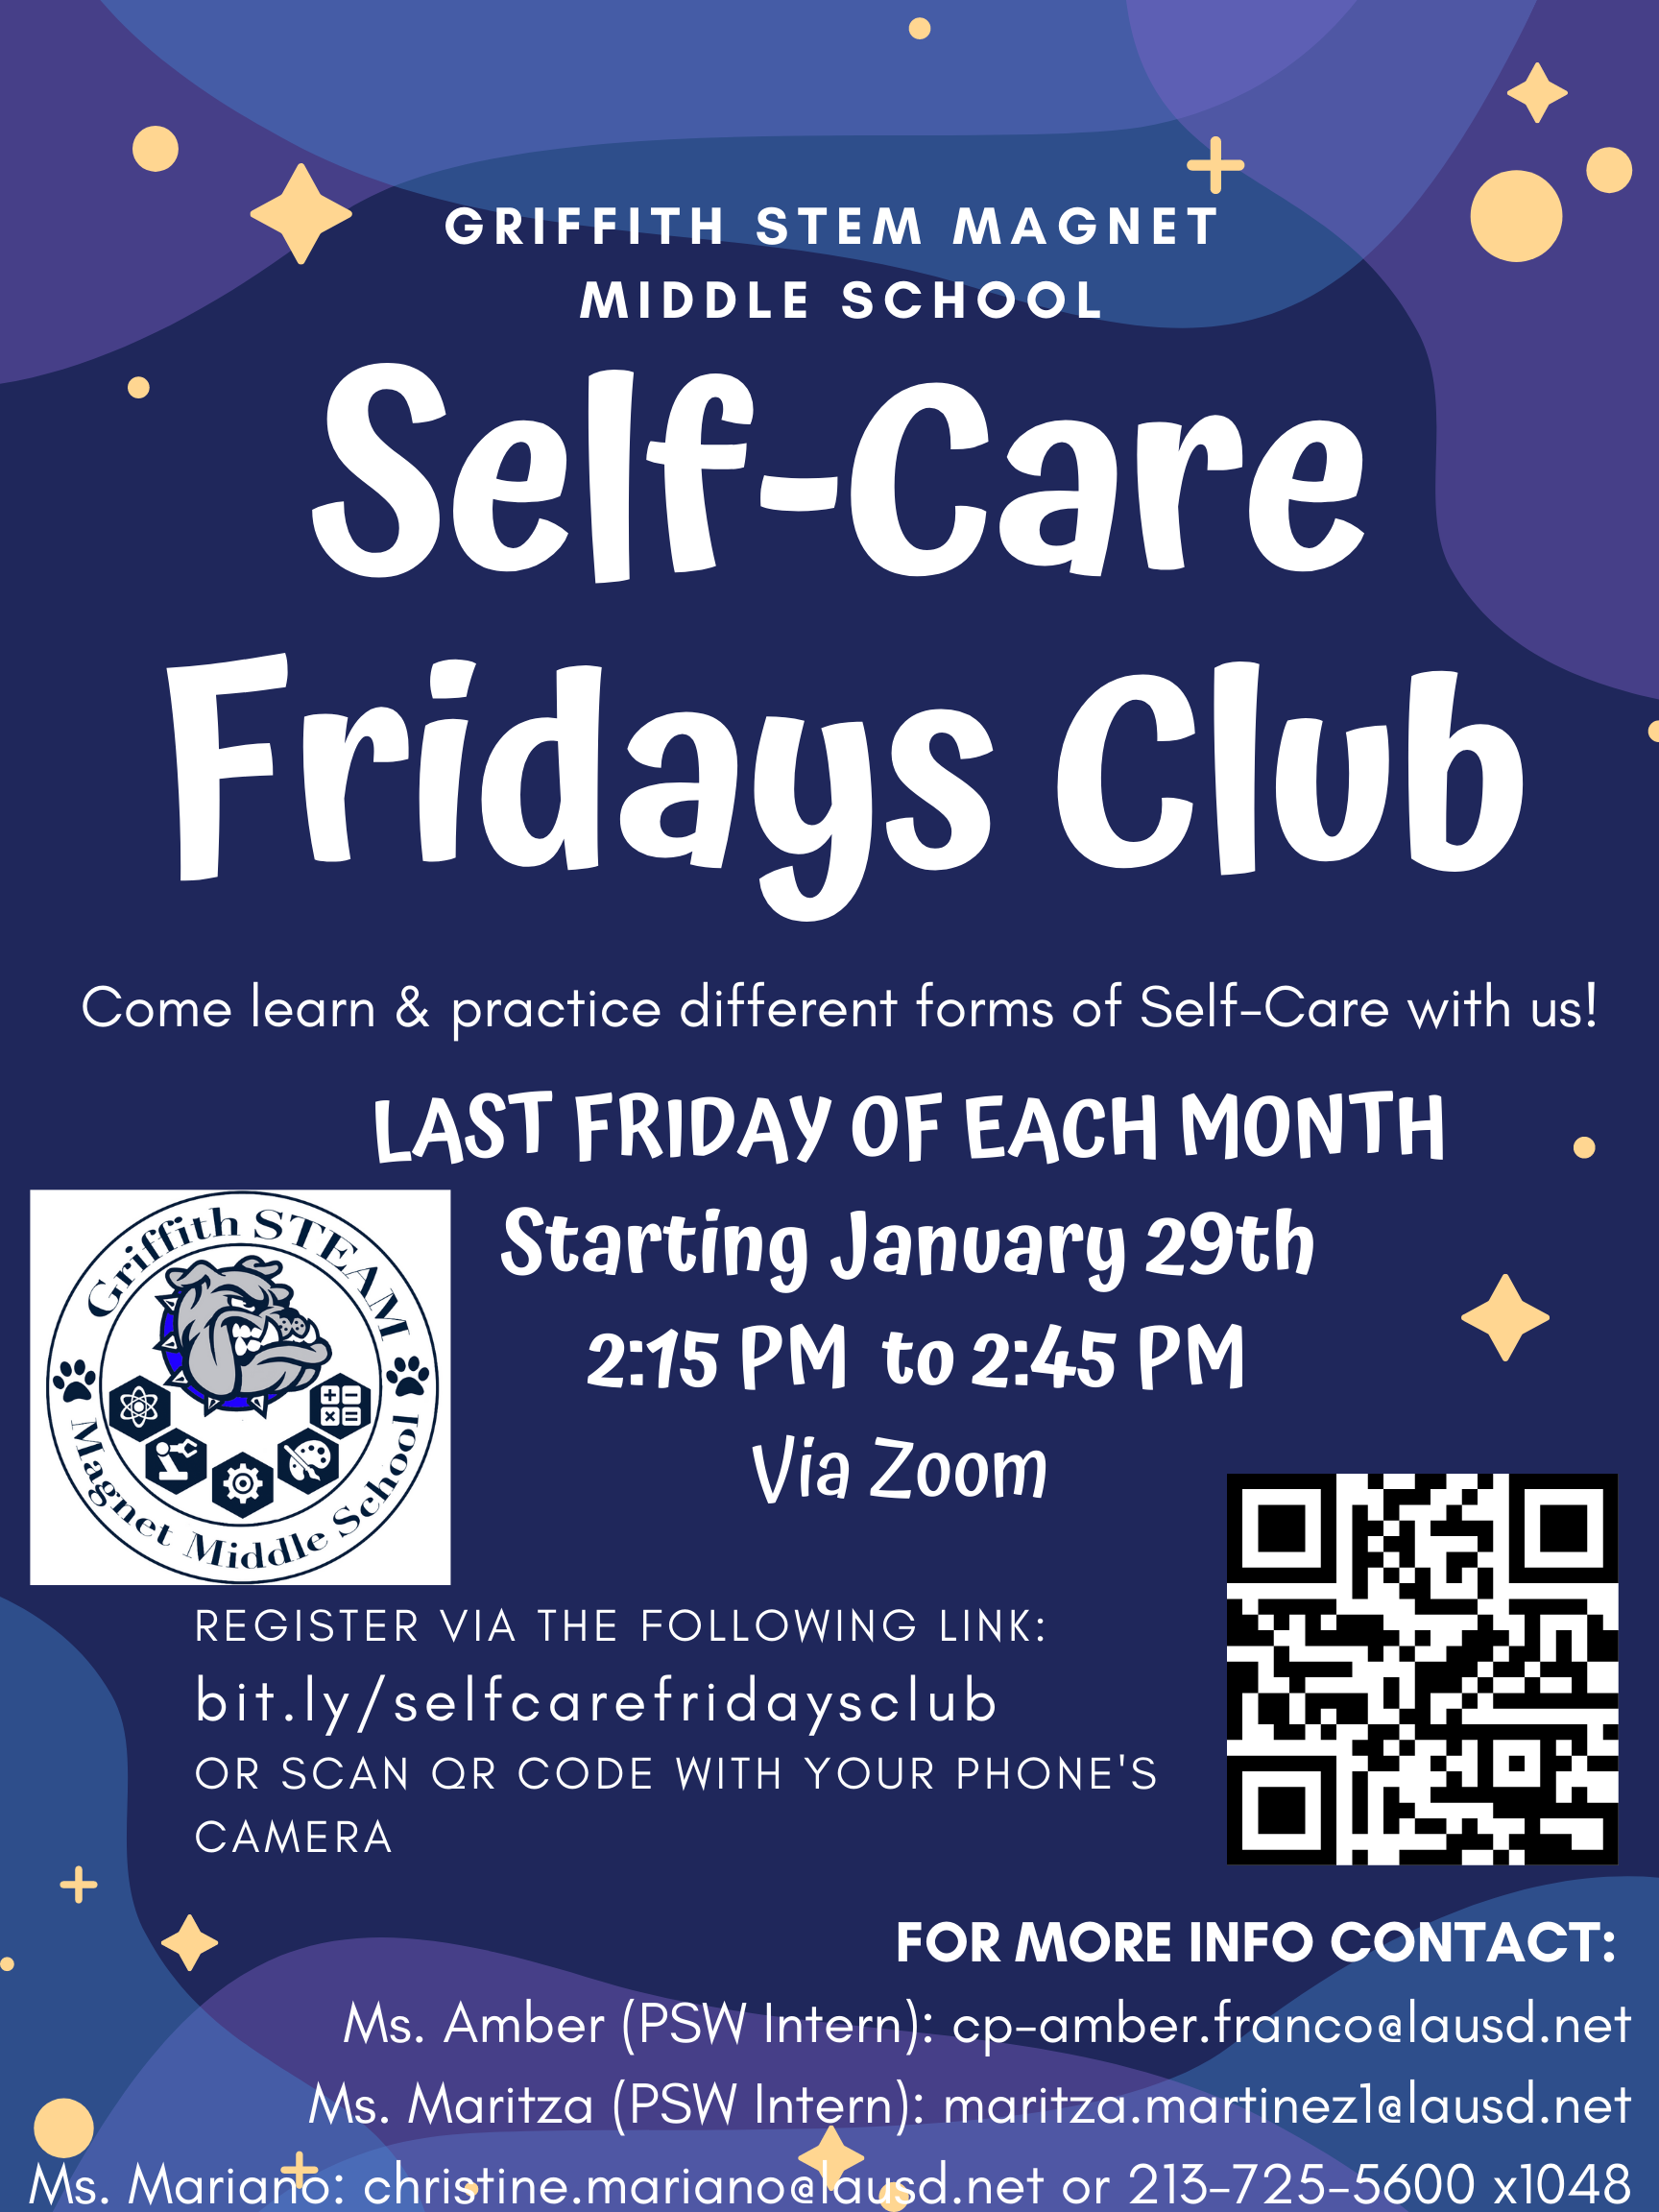 SELF CARE FRIDAYS!